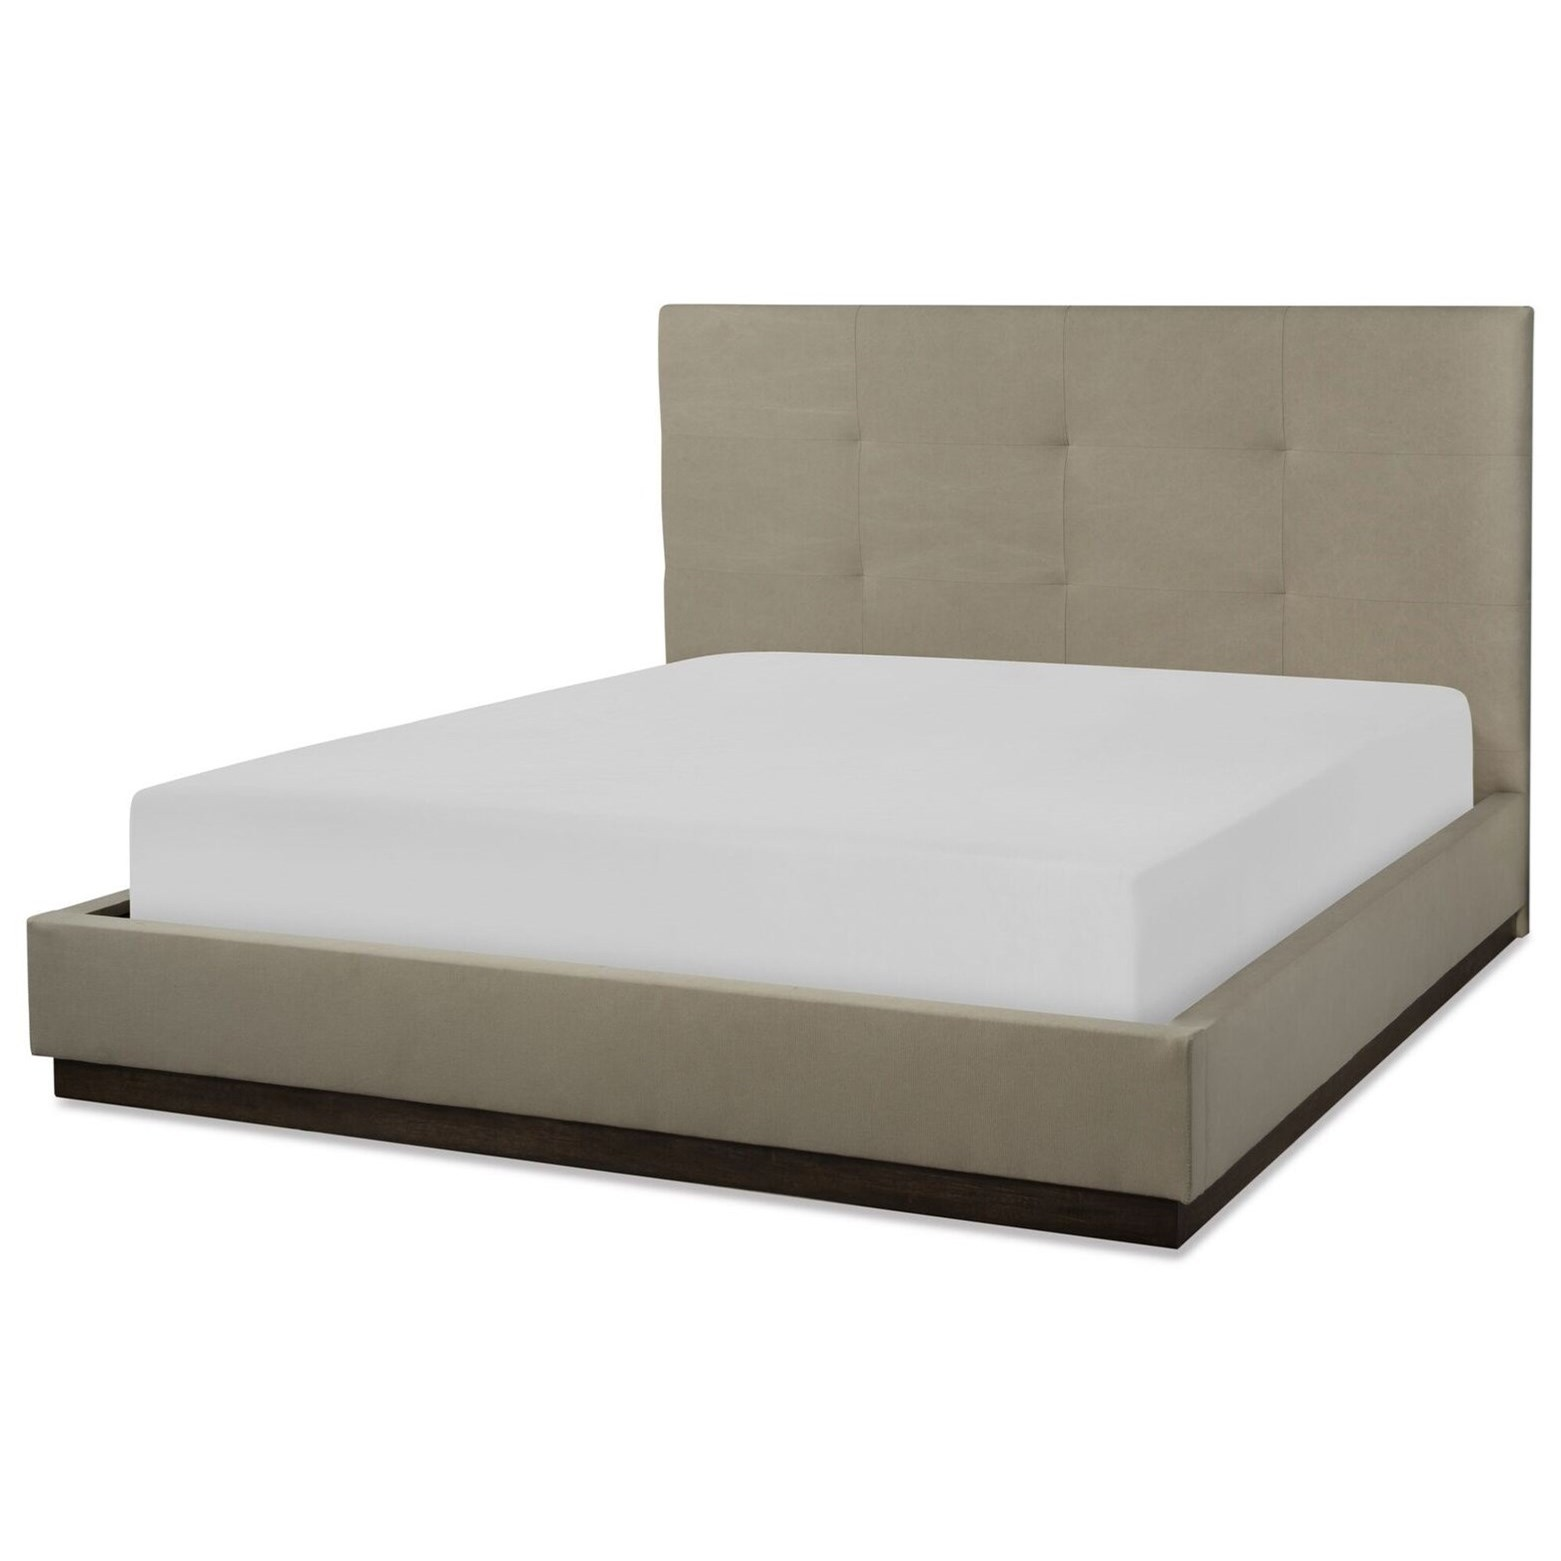 Queen Upholstered Wall Bed